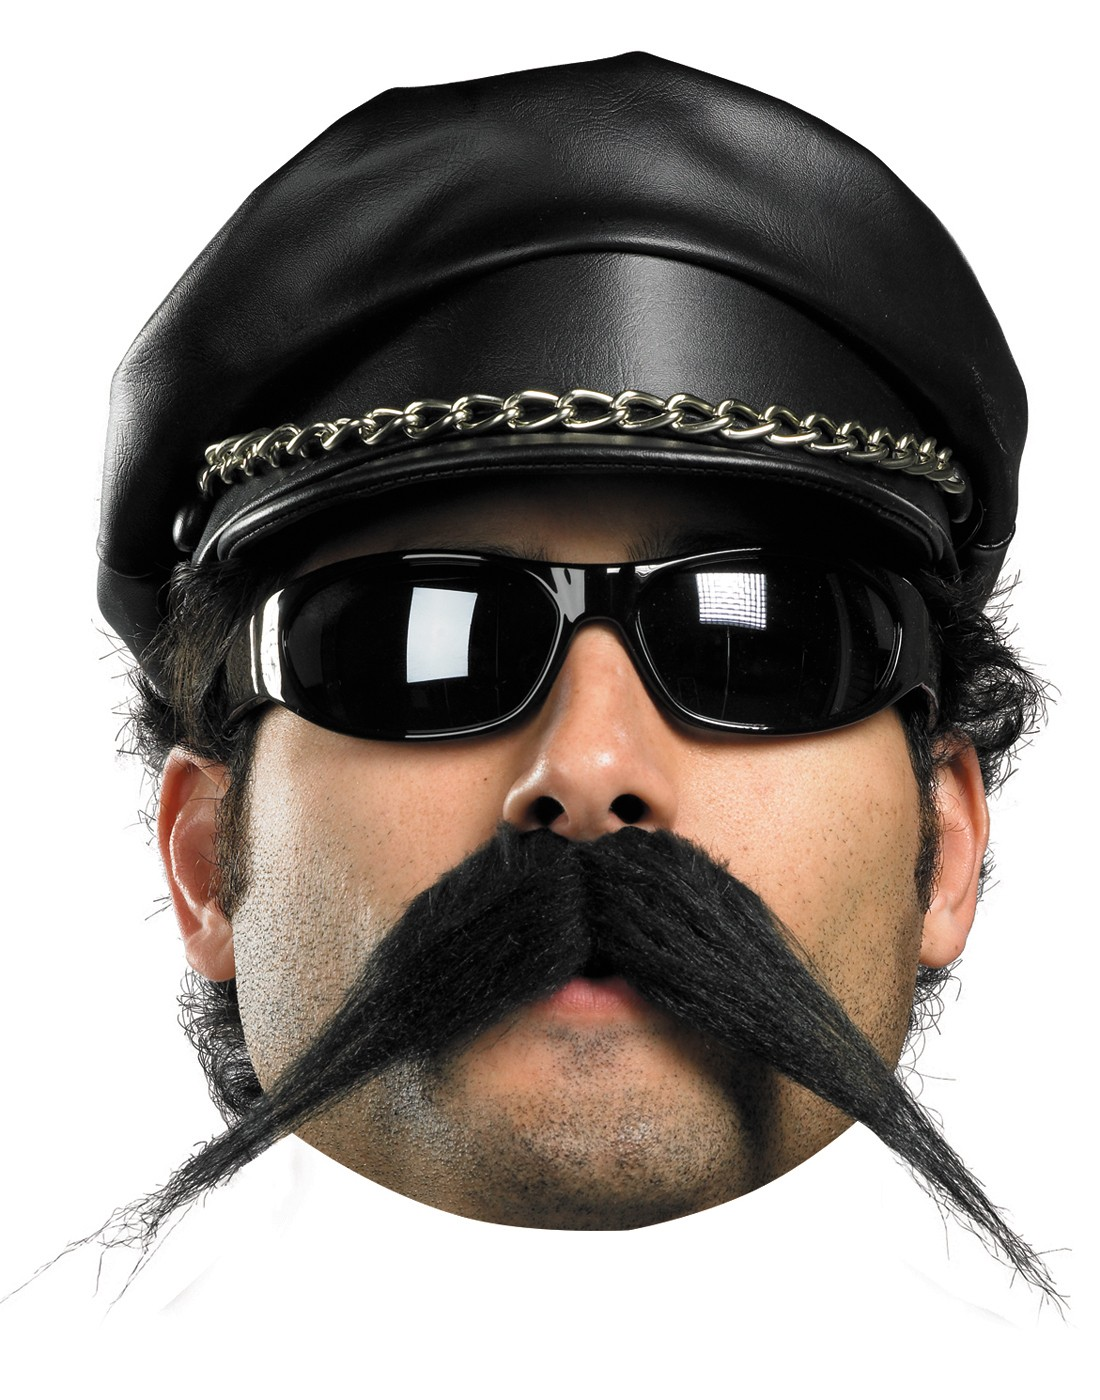 Adult Biker Moustache Menu0027s Fake Facial Hair Disguise Costume.jpg  sc 1 st  Costumes.com.au & Adult Biker Moustache Menu0027s Fake Facial Hair Disguise Costume ...